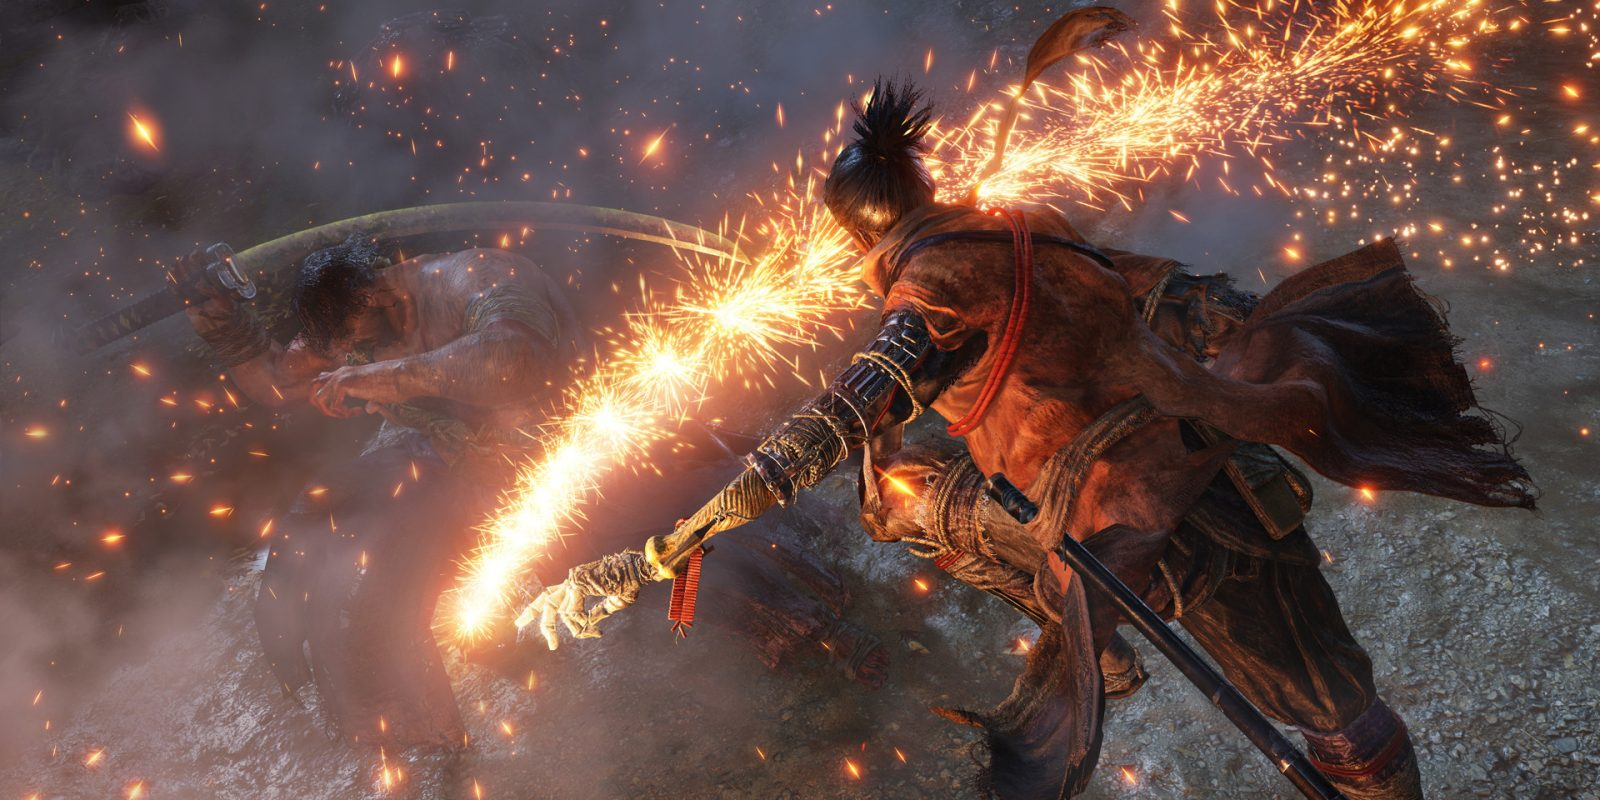 Huge Holiday Game Deals: Sekiro, RE 2, DMC 5, Rocket League, NHL 20, many more